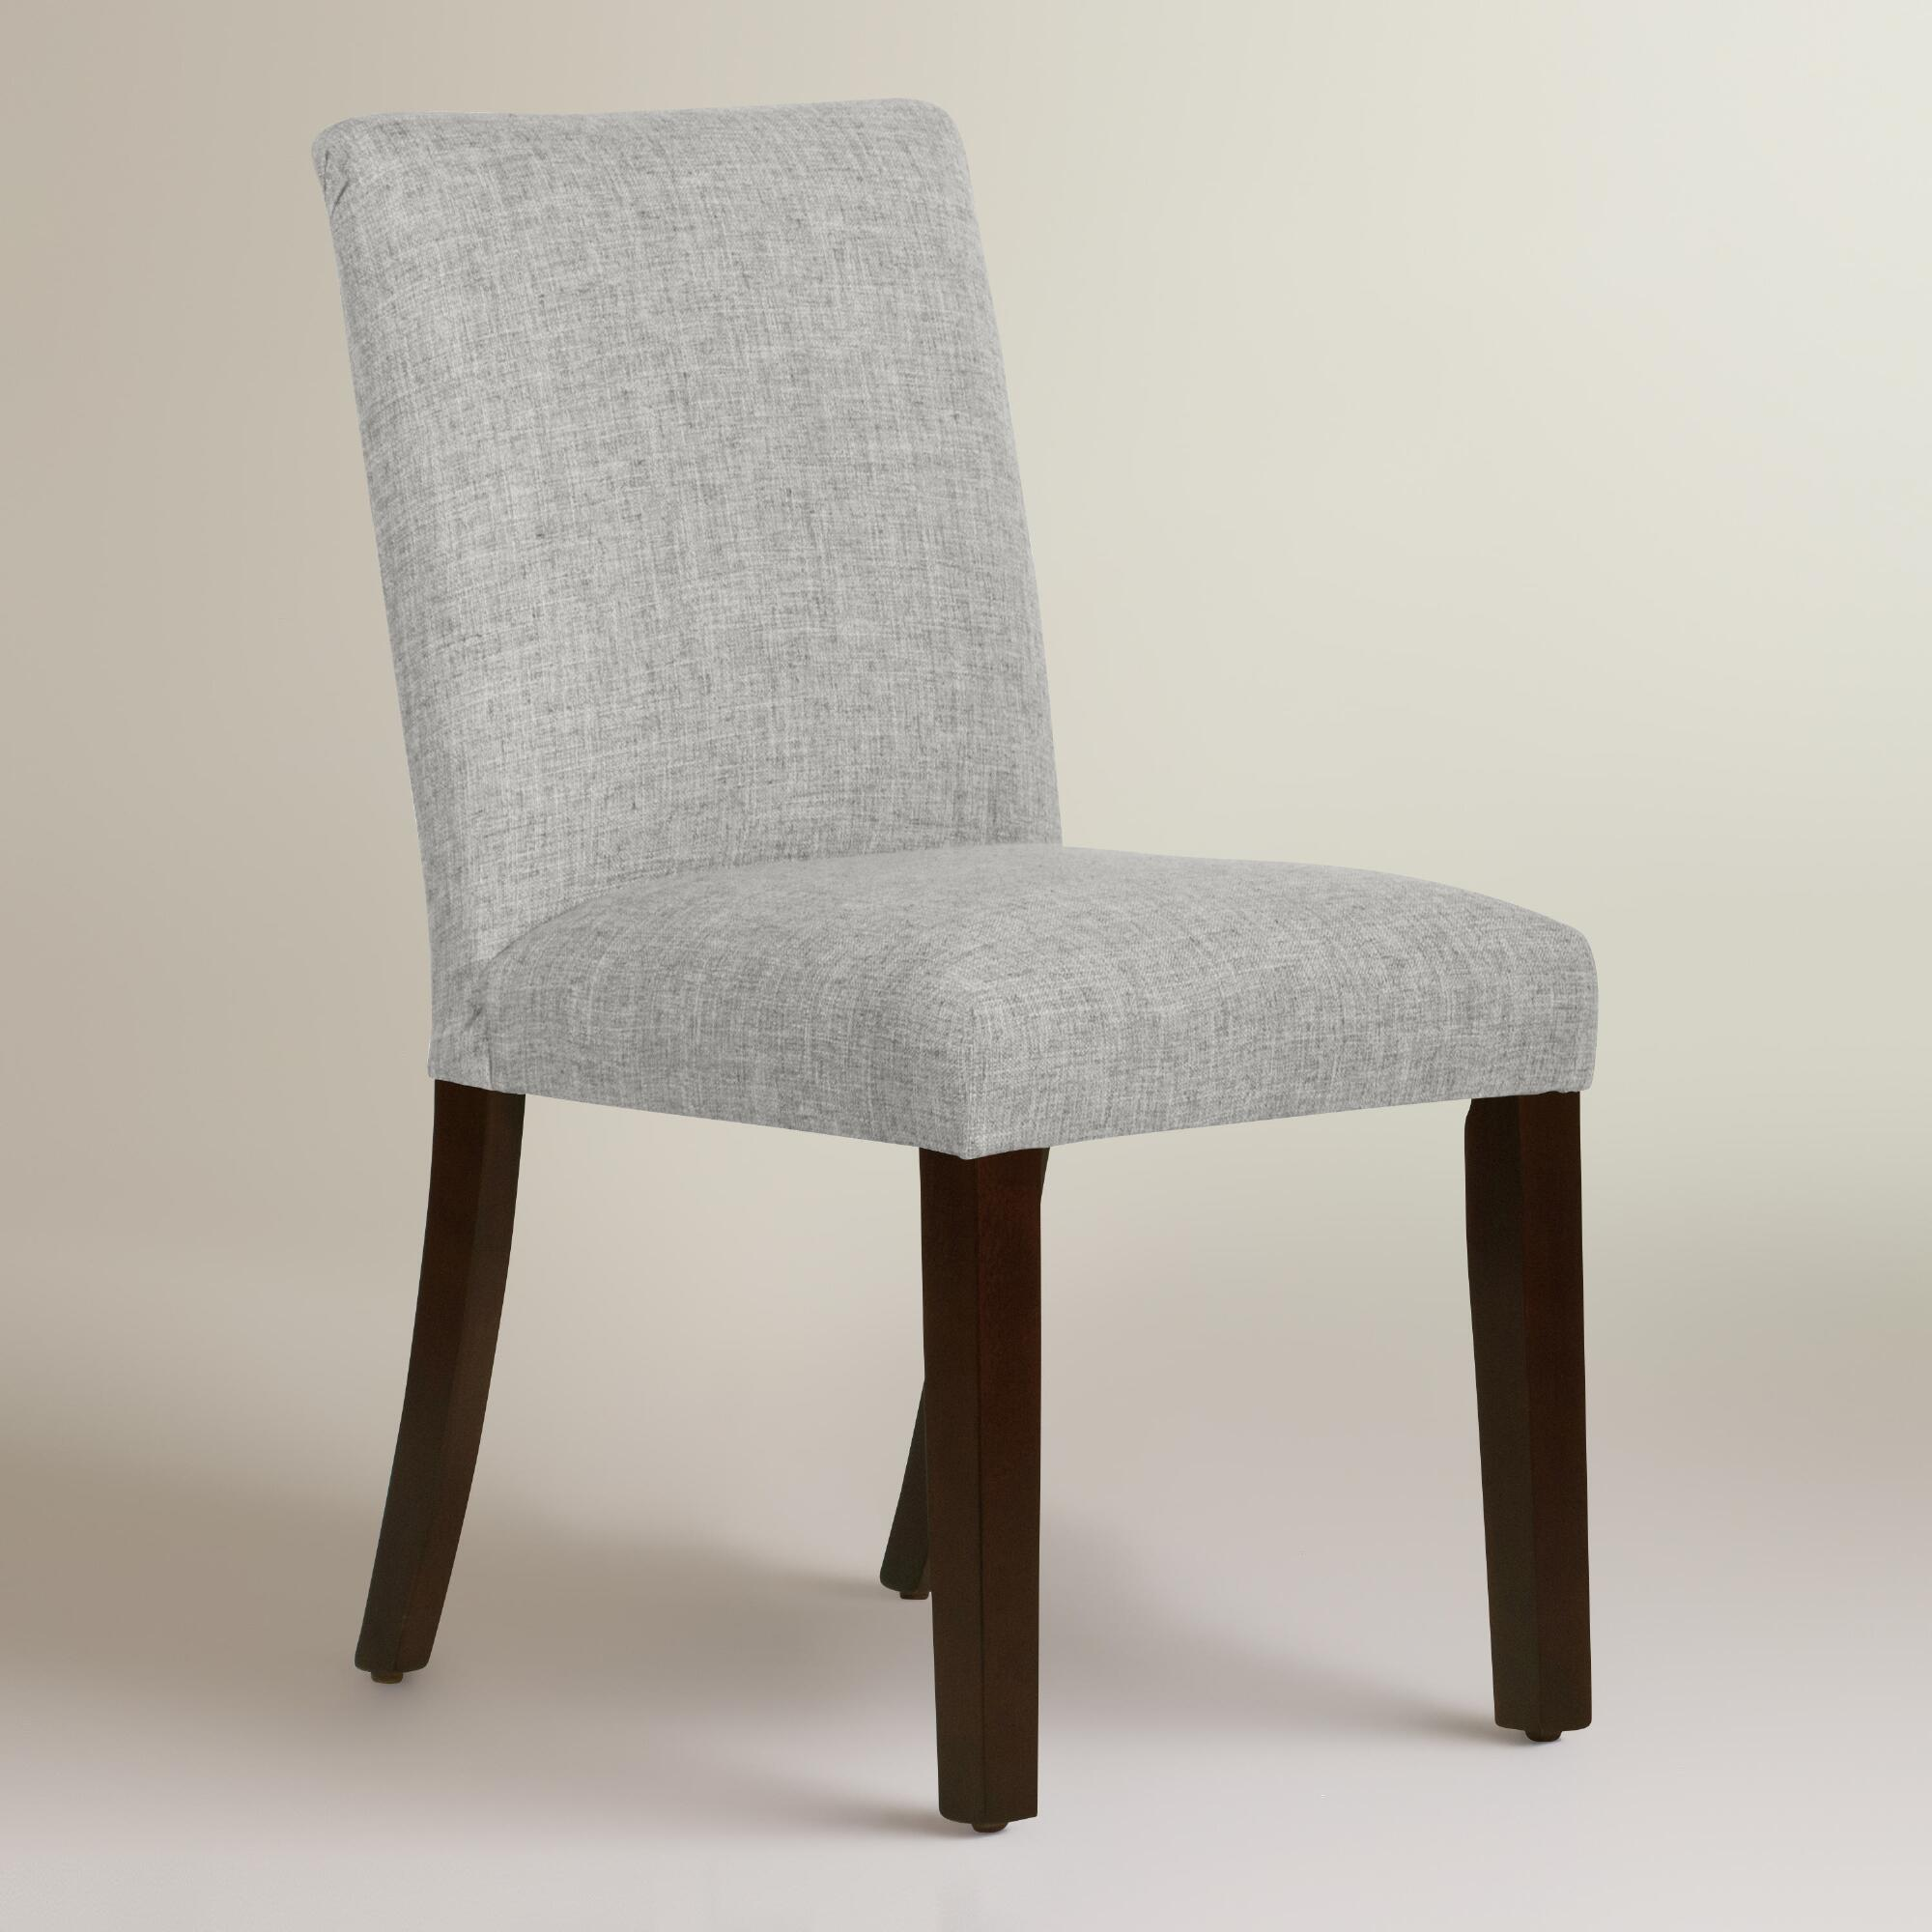 Linen blend kerri upholstered dining chair world market for Upholstered linen dining chairs